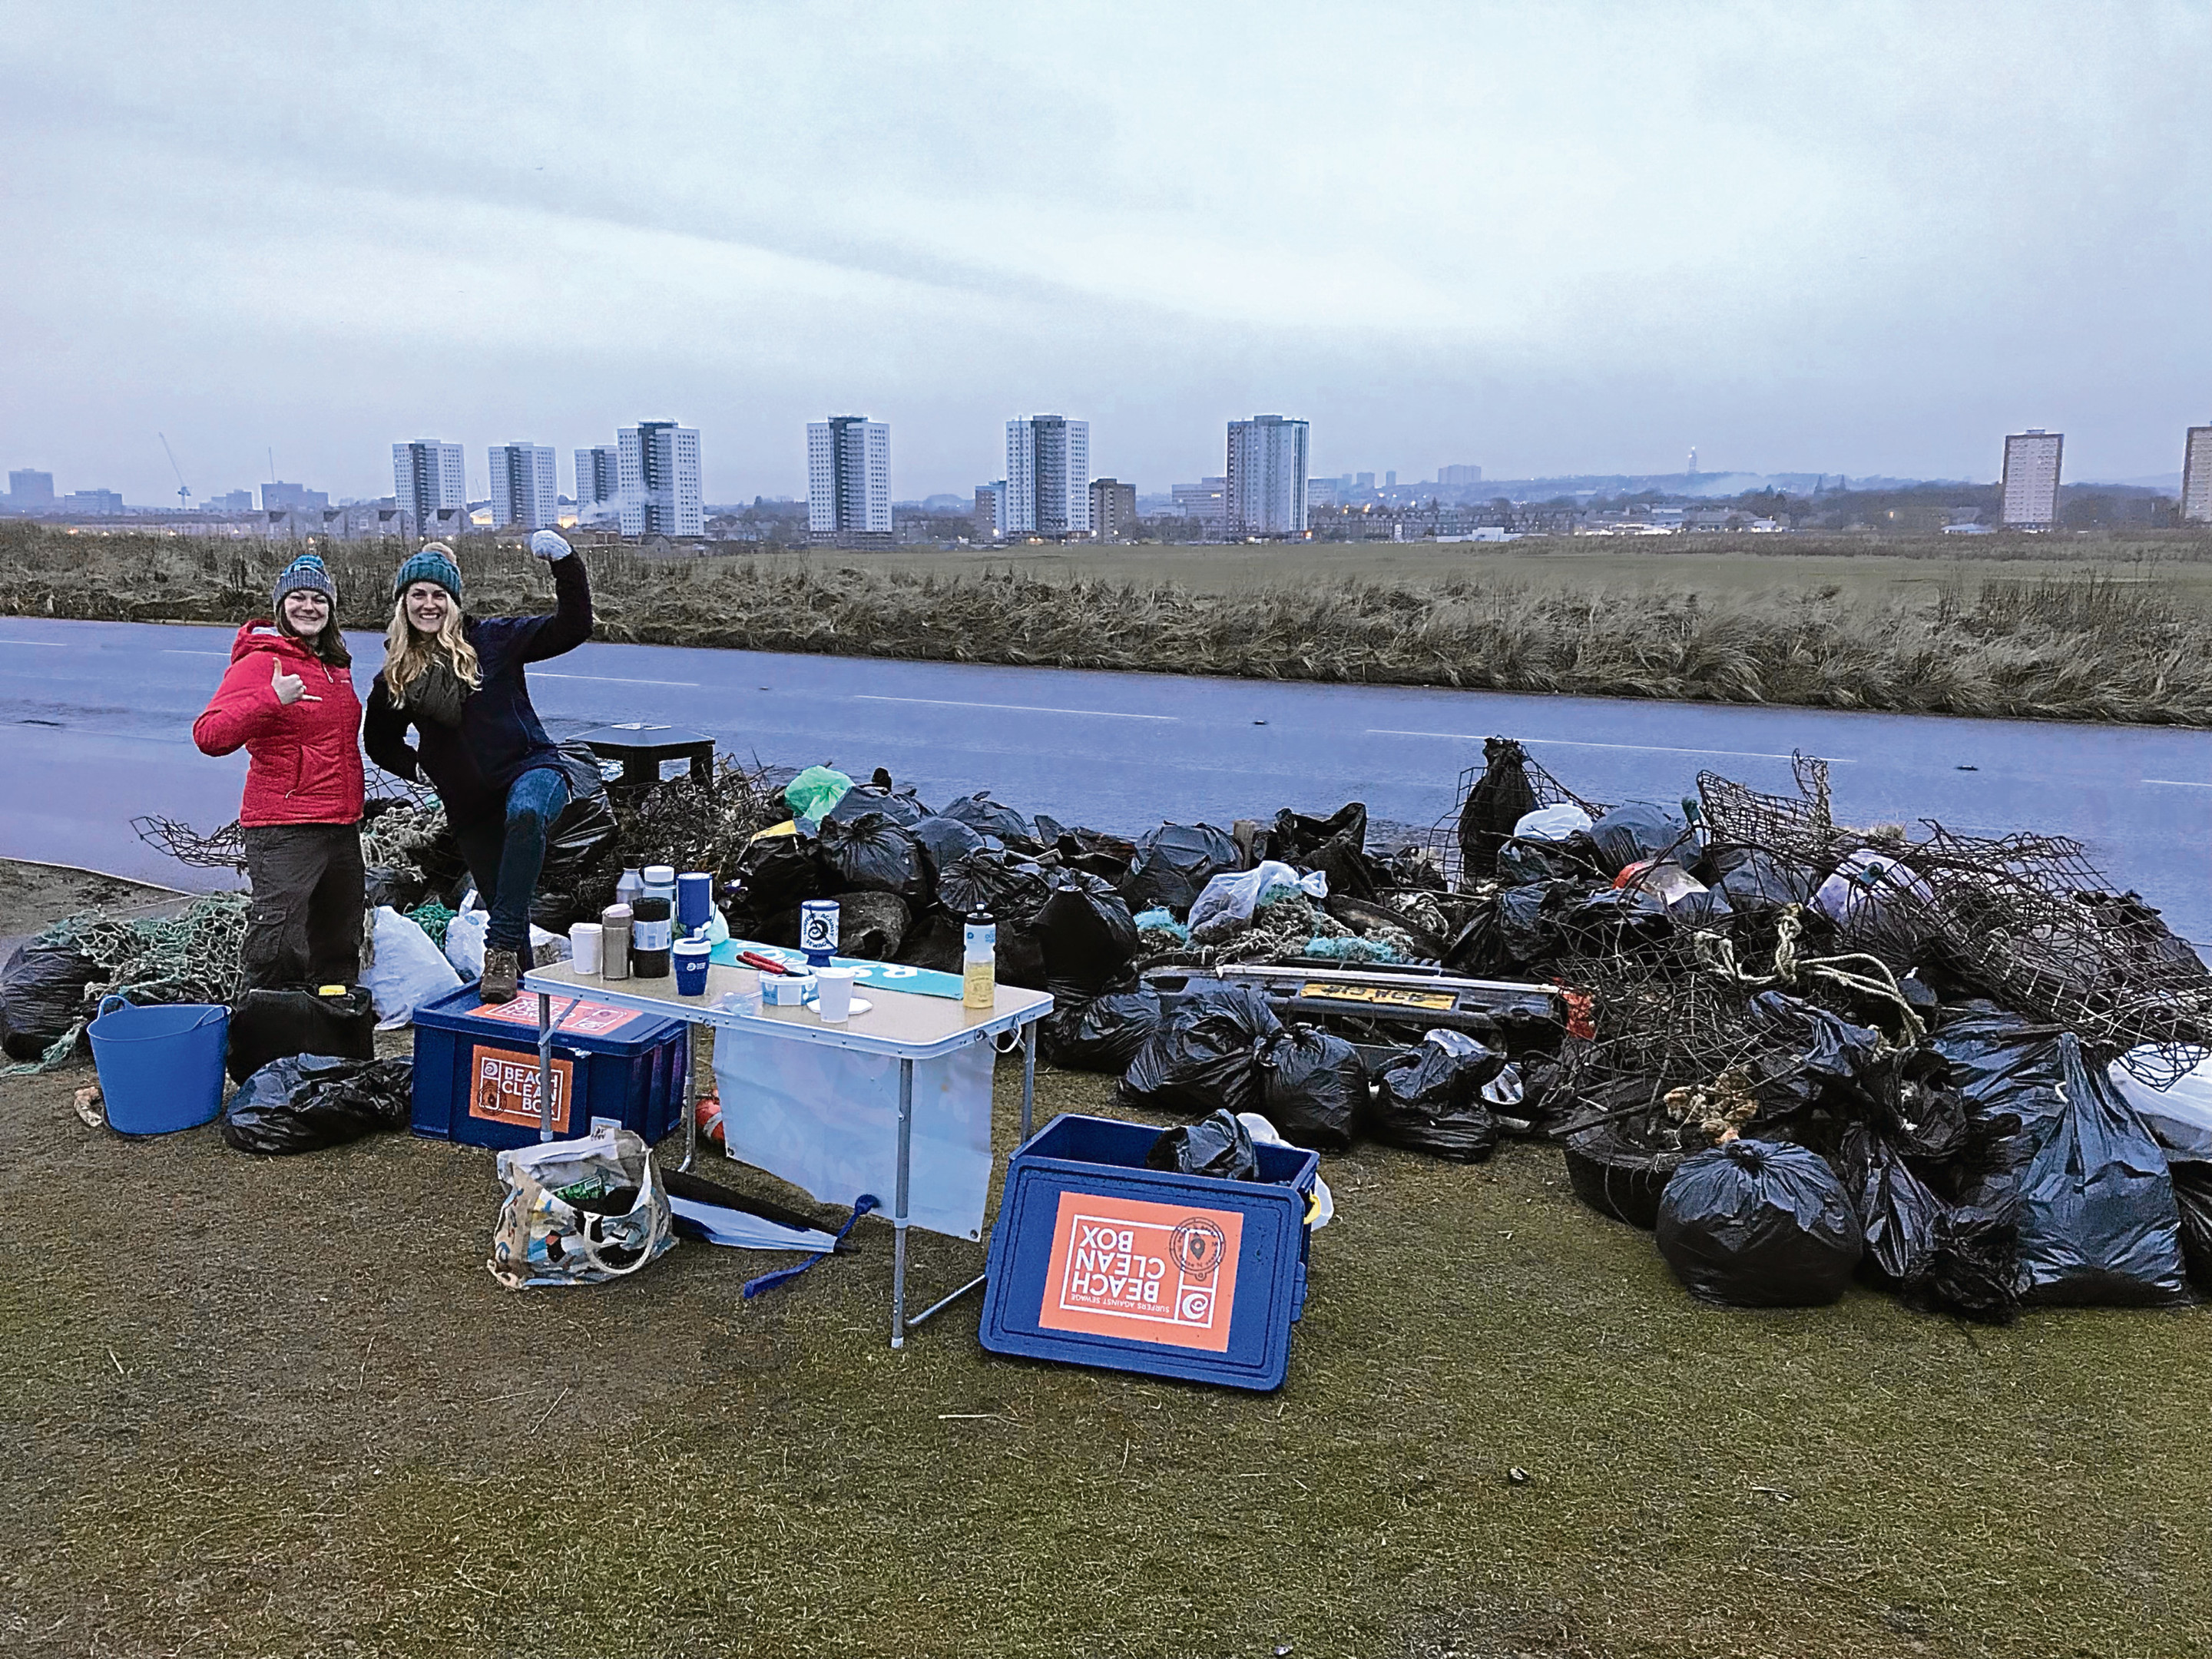 Lauren Smith, left, and one of the volunteers with some of the 500 bags of rubbish collected.